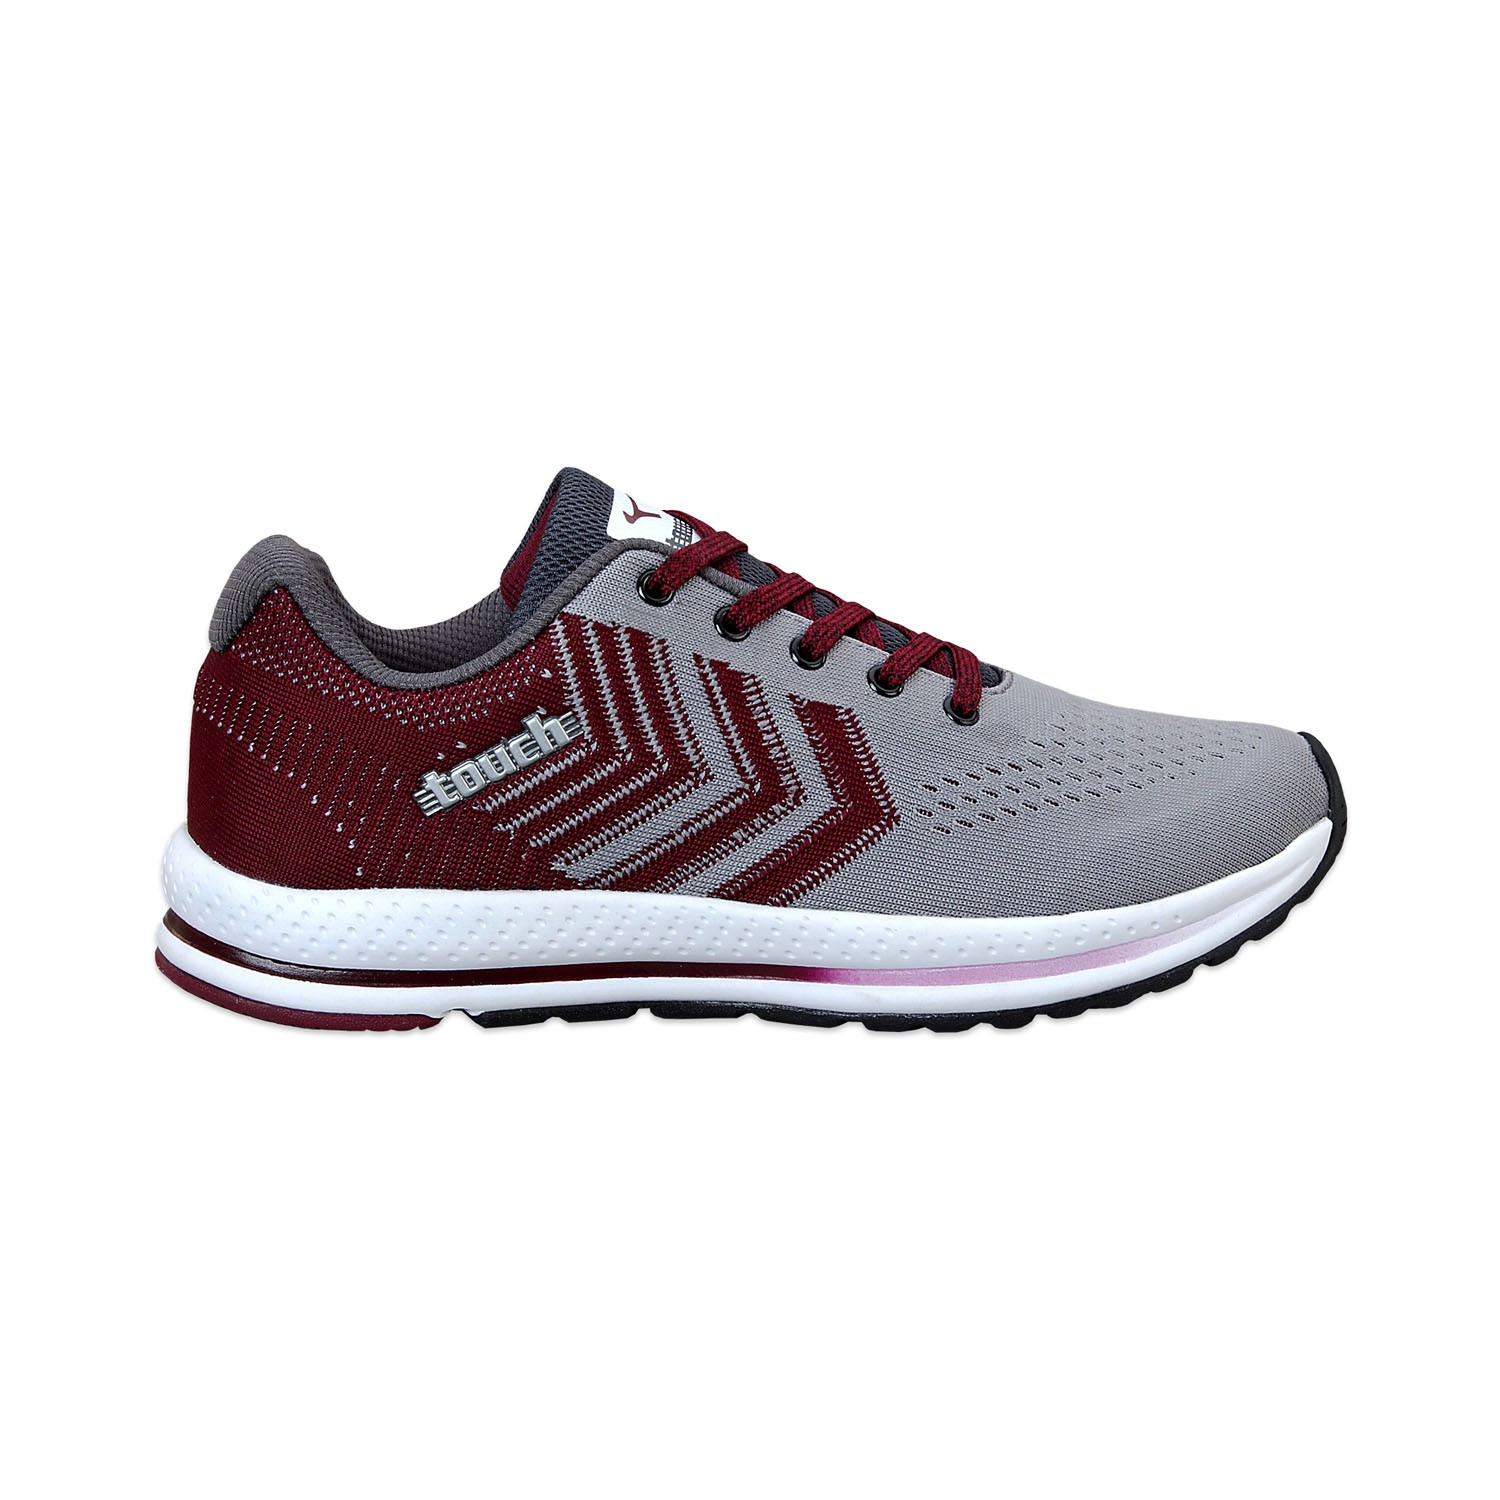 Touch F-041 A1 ST Frey Maroon